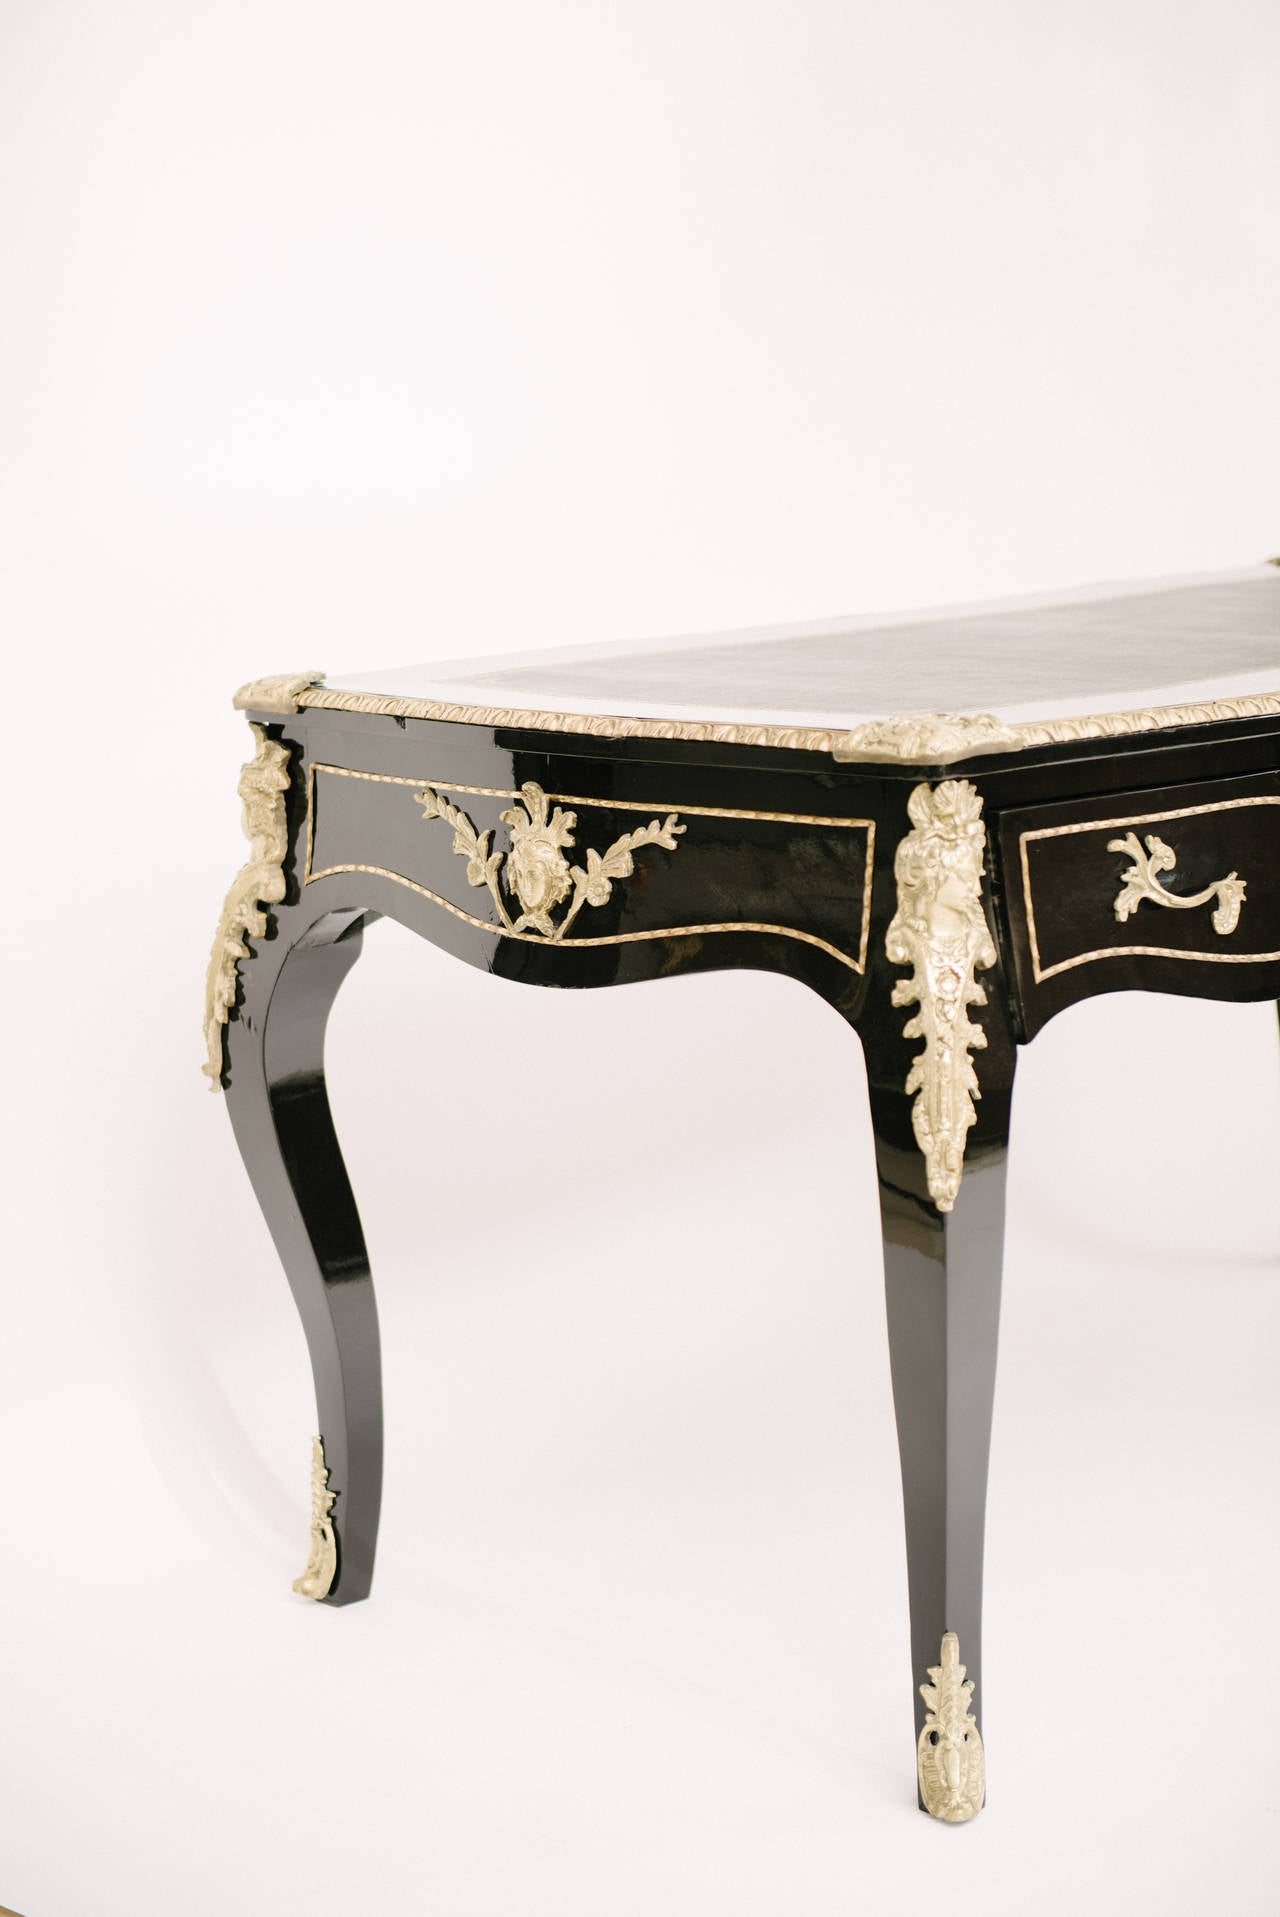 Black lacquered louis xv style bureau plat at 1stdibs for Bureau louis xv